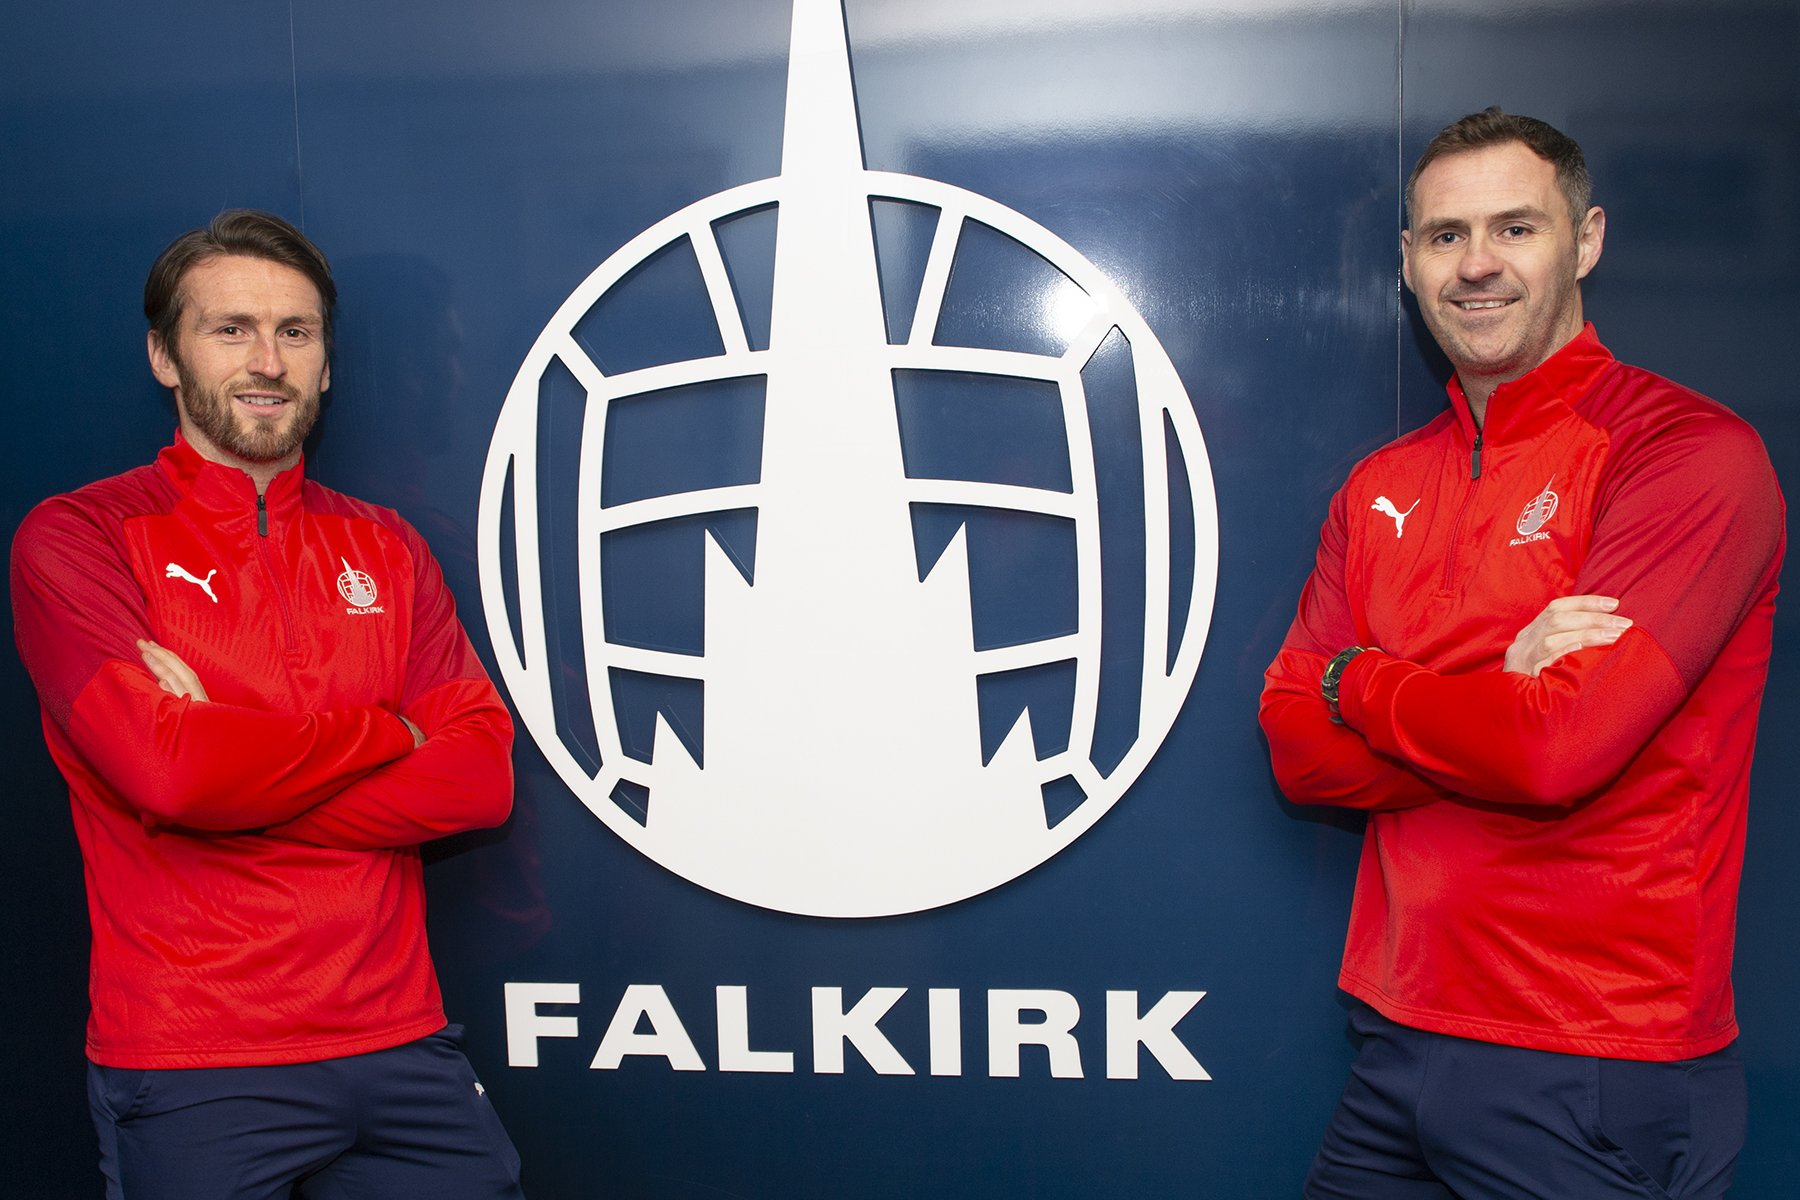 Miller and McCraken pose after their hiring as managers of Falkirk